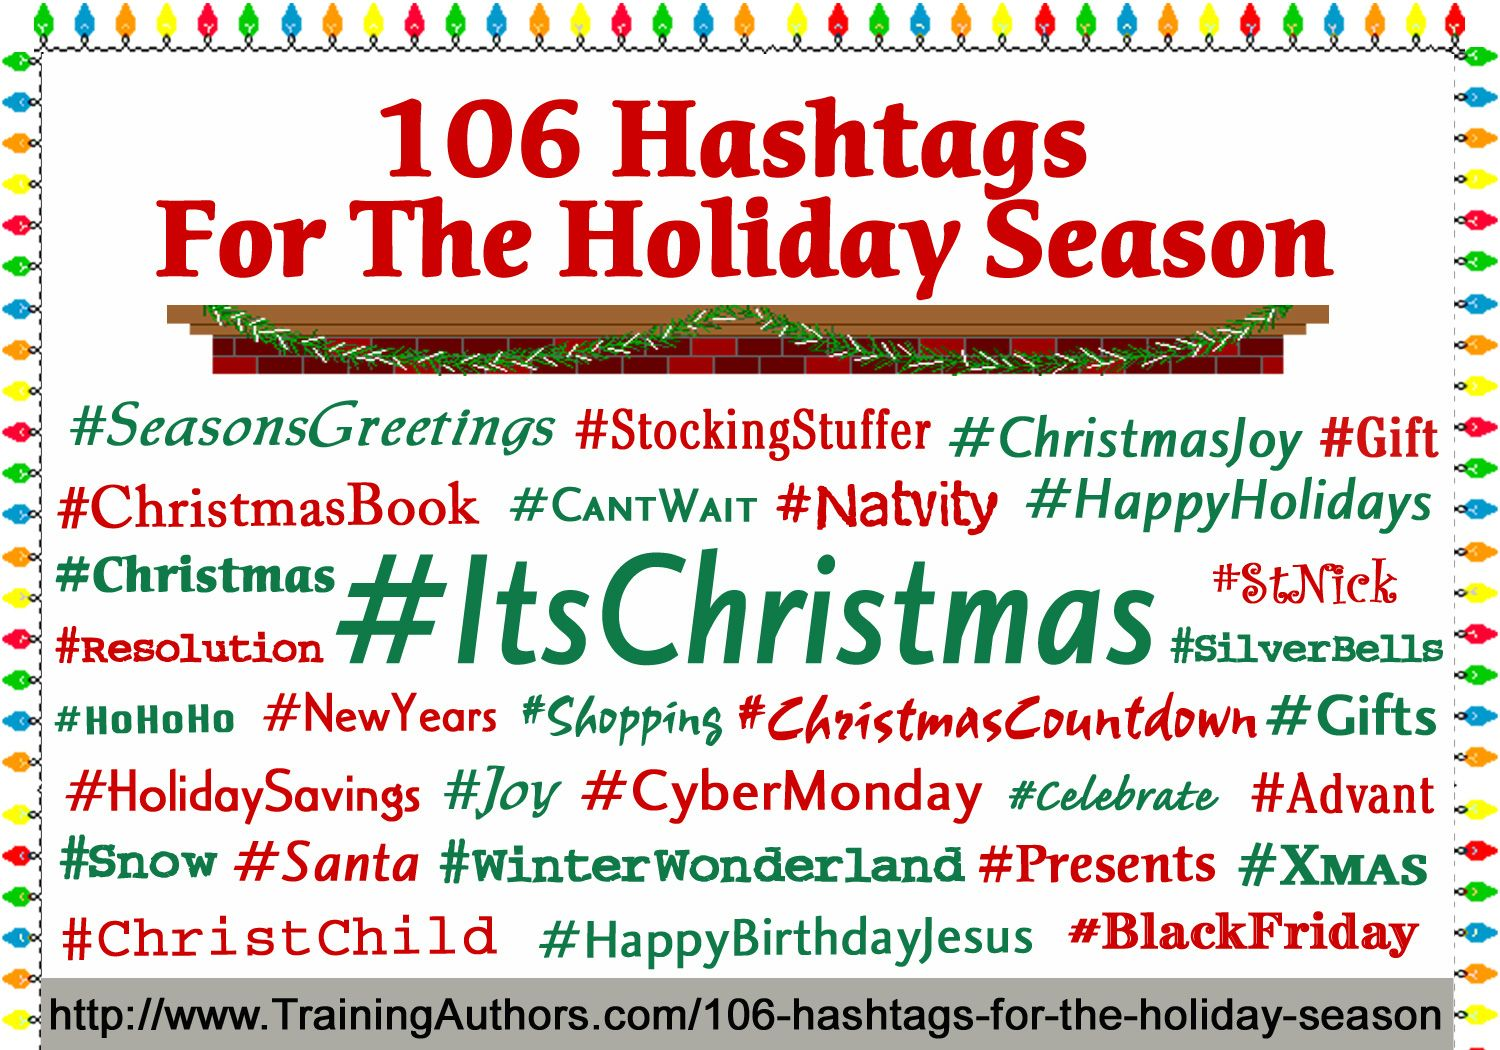 106 Hashtags For The Holiday Season There Are A Ton Of Reasons To Use Hashtags And Everyone Has Their Own Holiday Hashtags Social Media How To Be Likeable